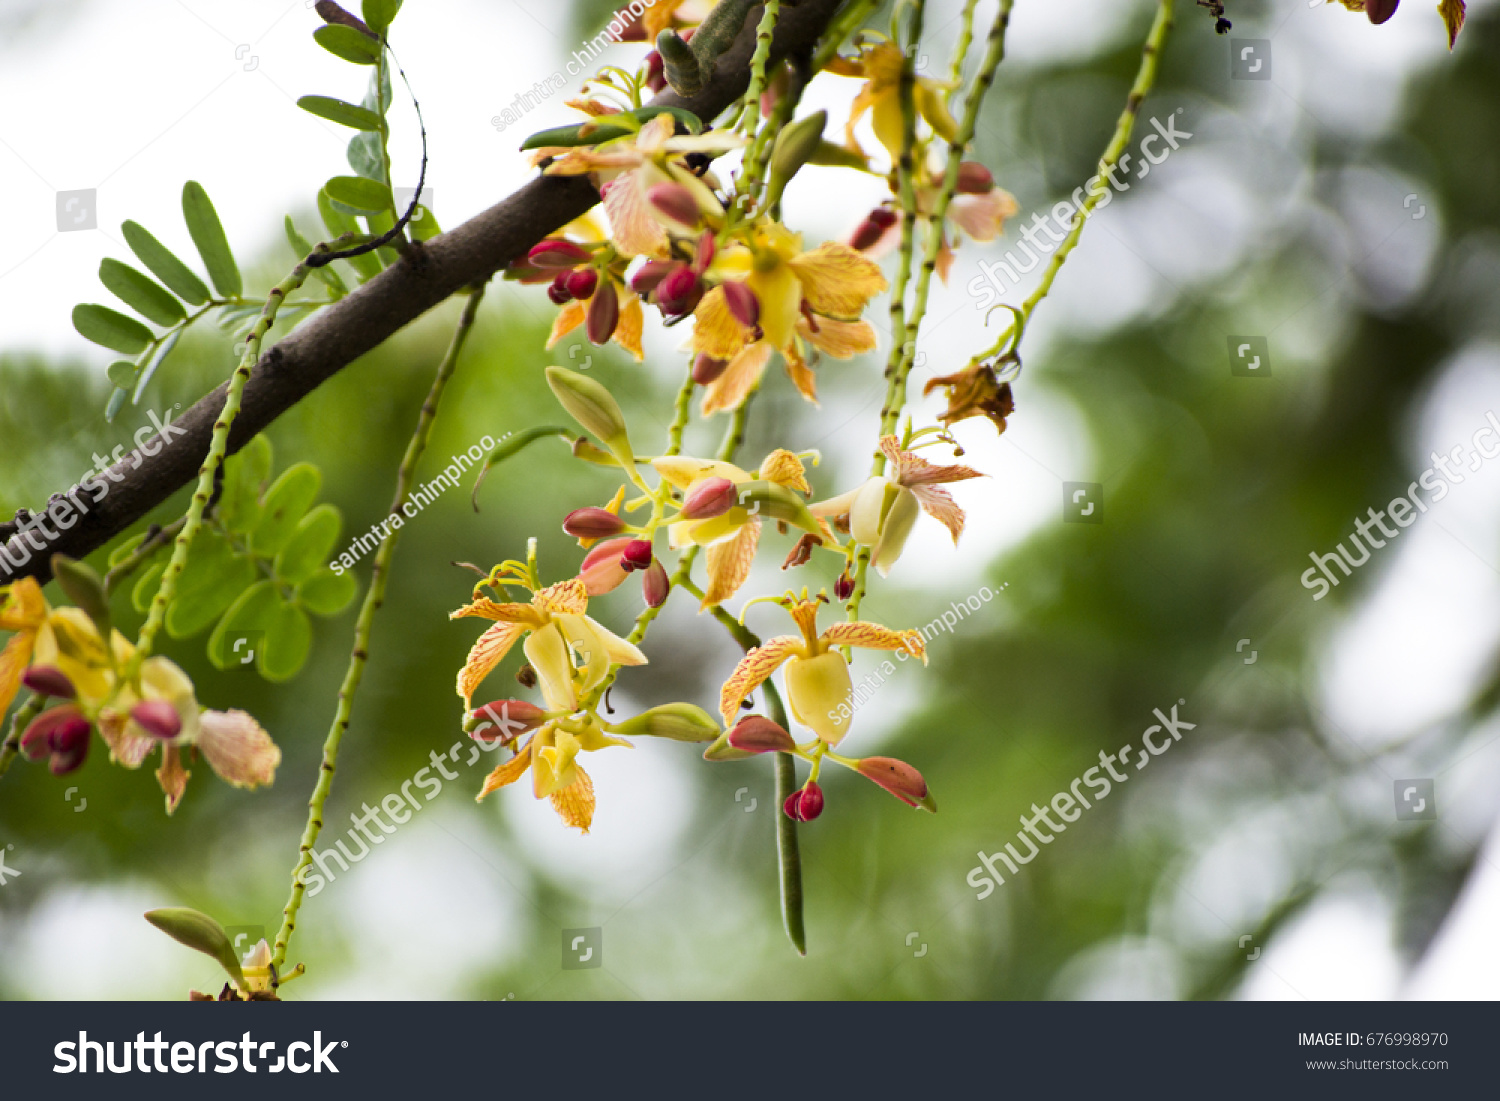 Tamarind Flower Blooming On Tree Scientific Stock Photo Royalty